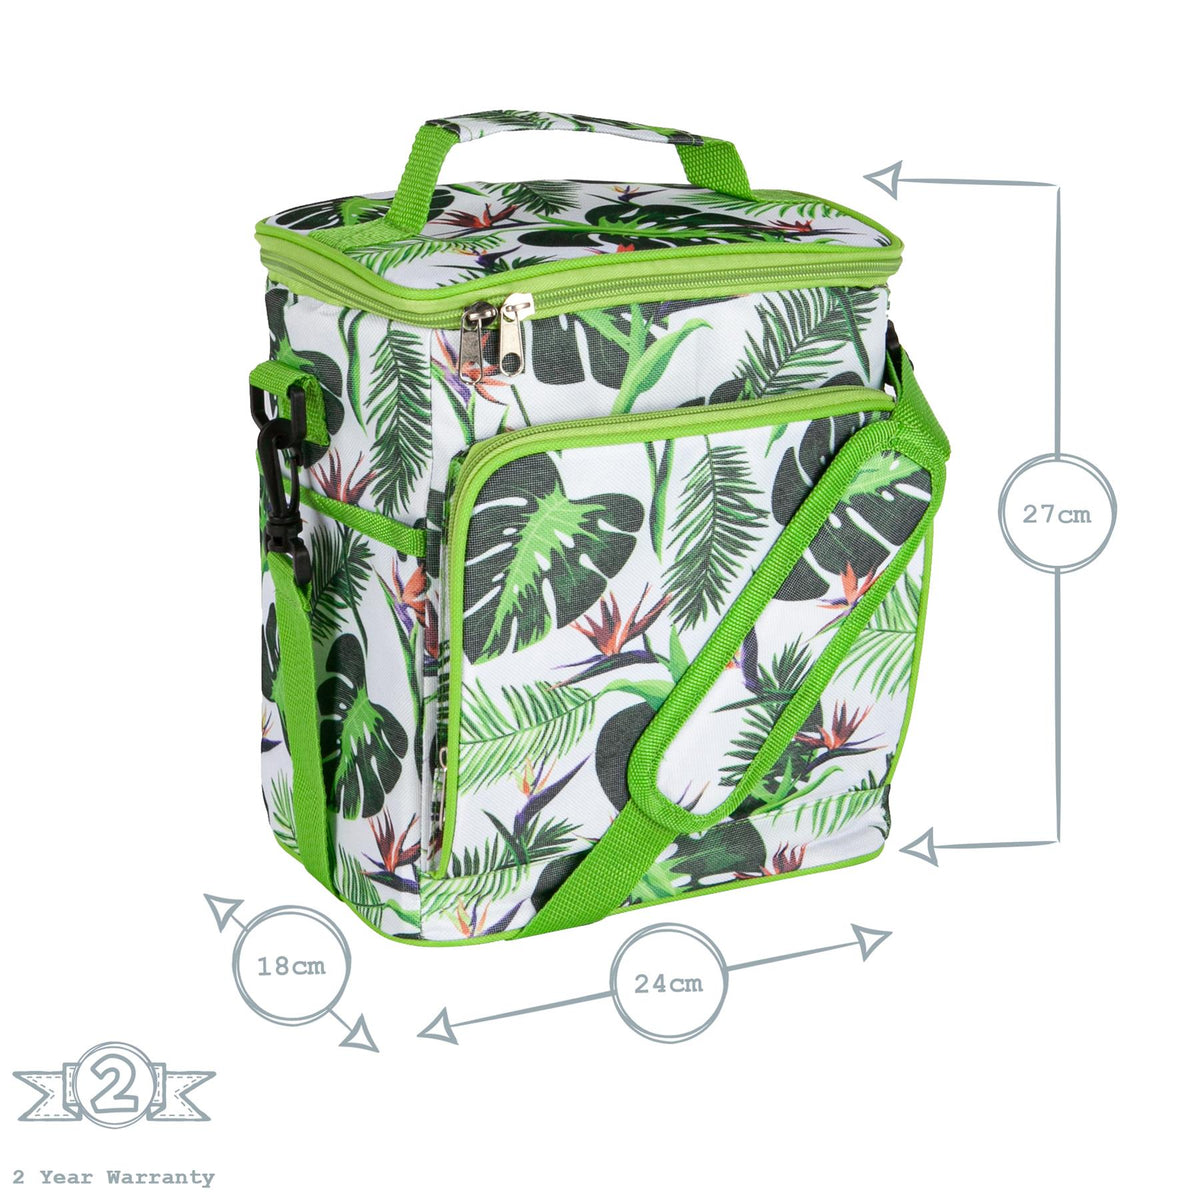 Nicola Spring Insulated Cooler Bag - Tropical